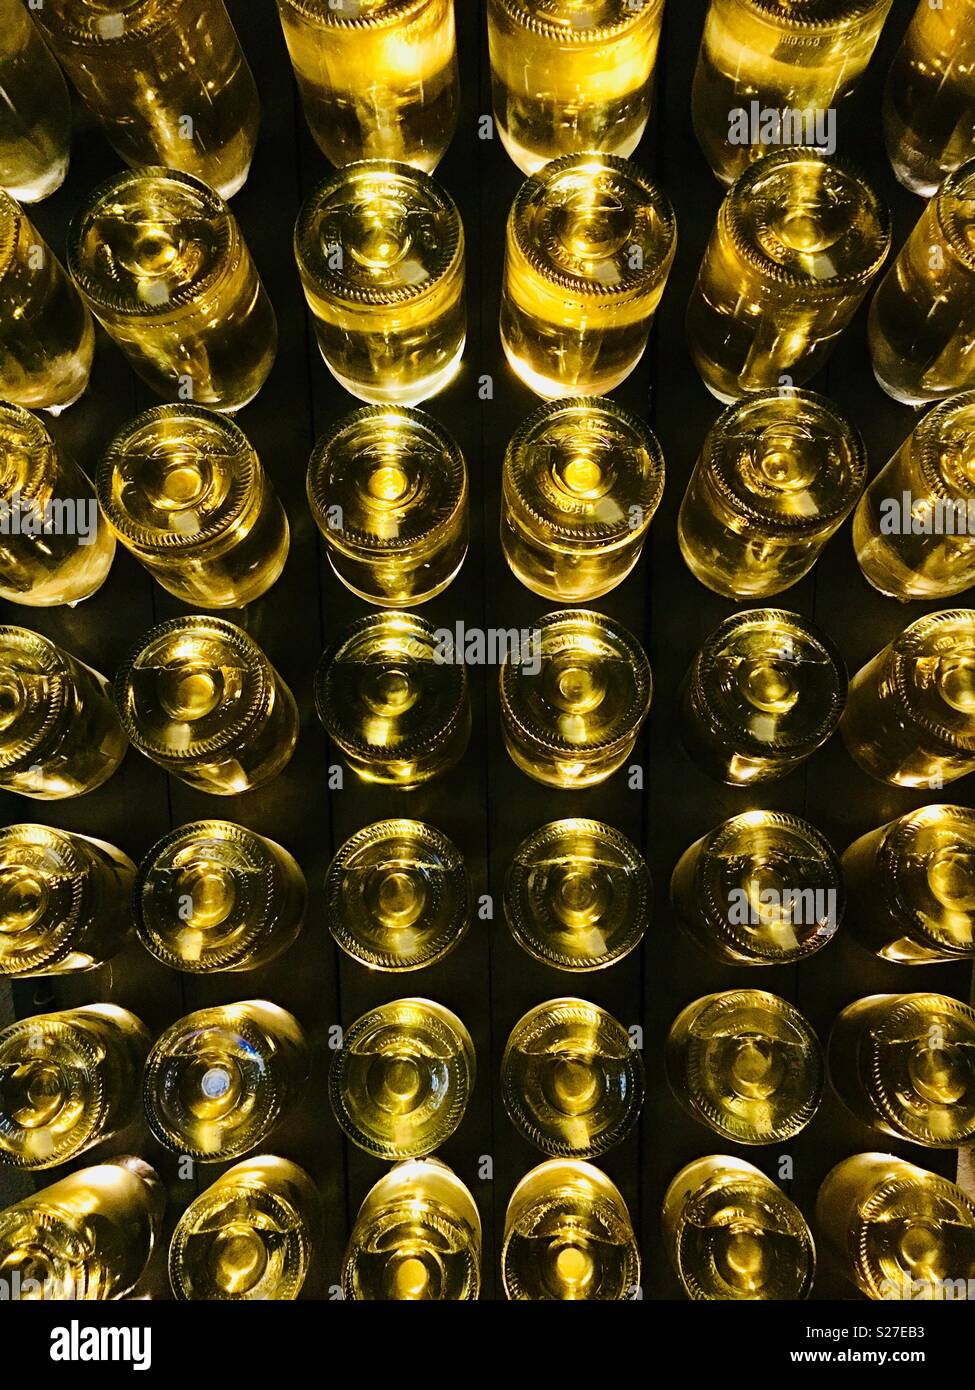 what does disgorged in mean on champagne bottle